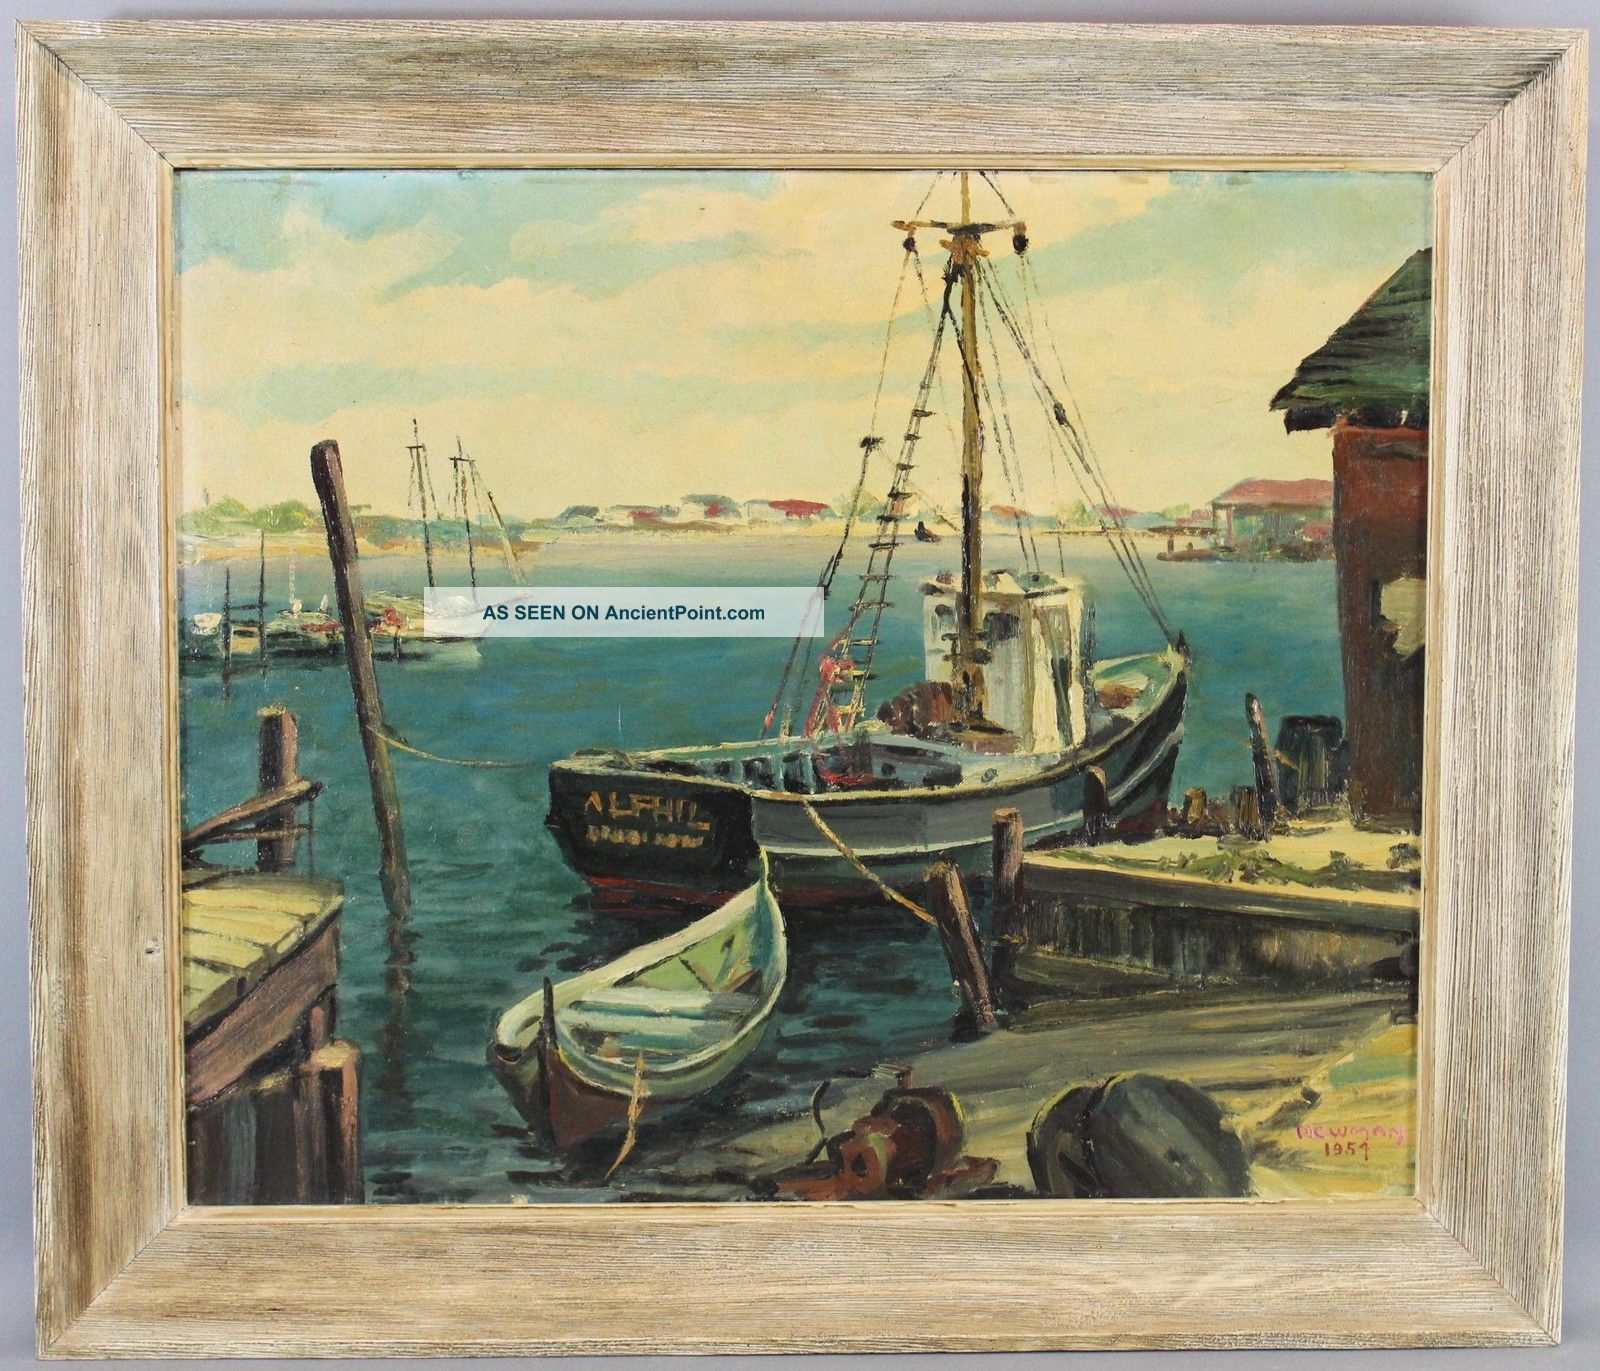 1954 Vintage Authentic Bird Spencer Newman Seascape Docked Boats Oil Painting Nr Other Maritime Antiques photo